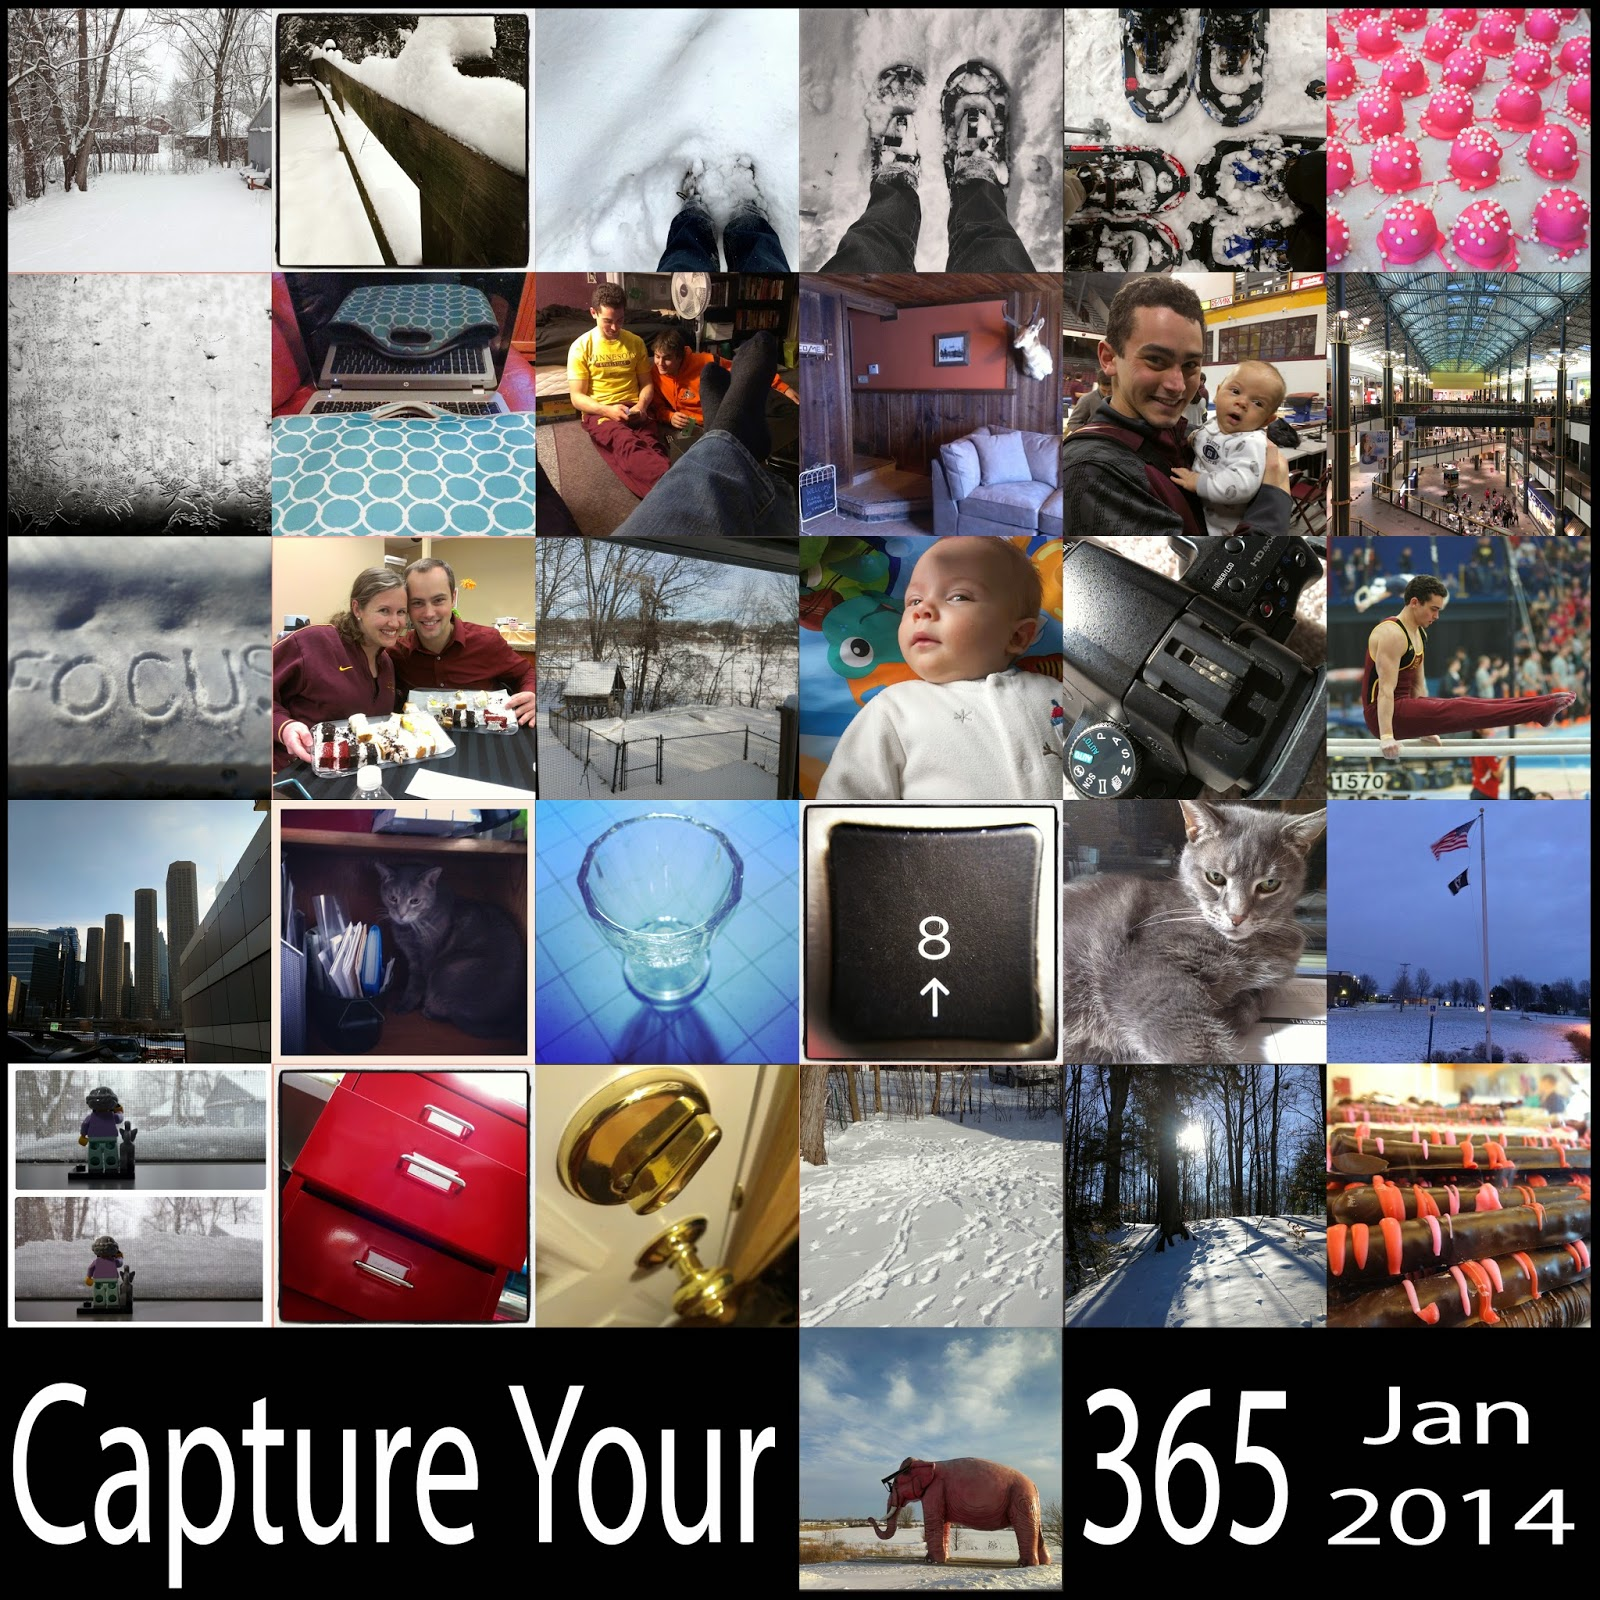 Capture Your 365 - Jan 2014